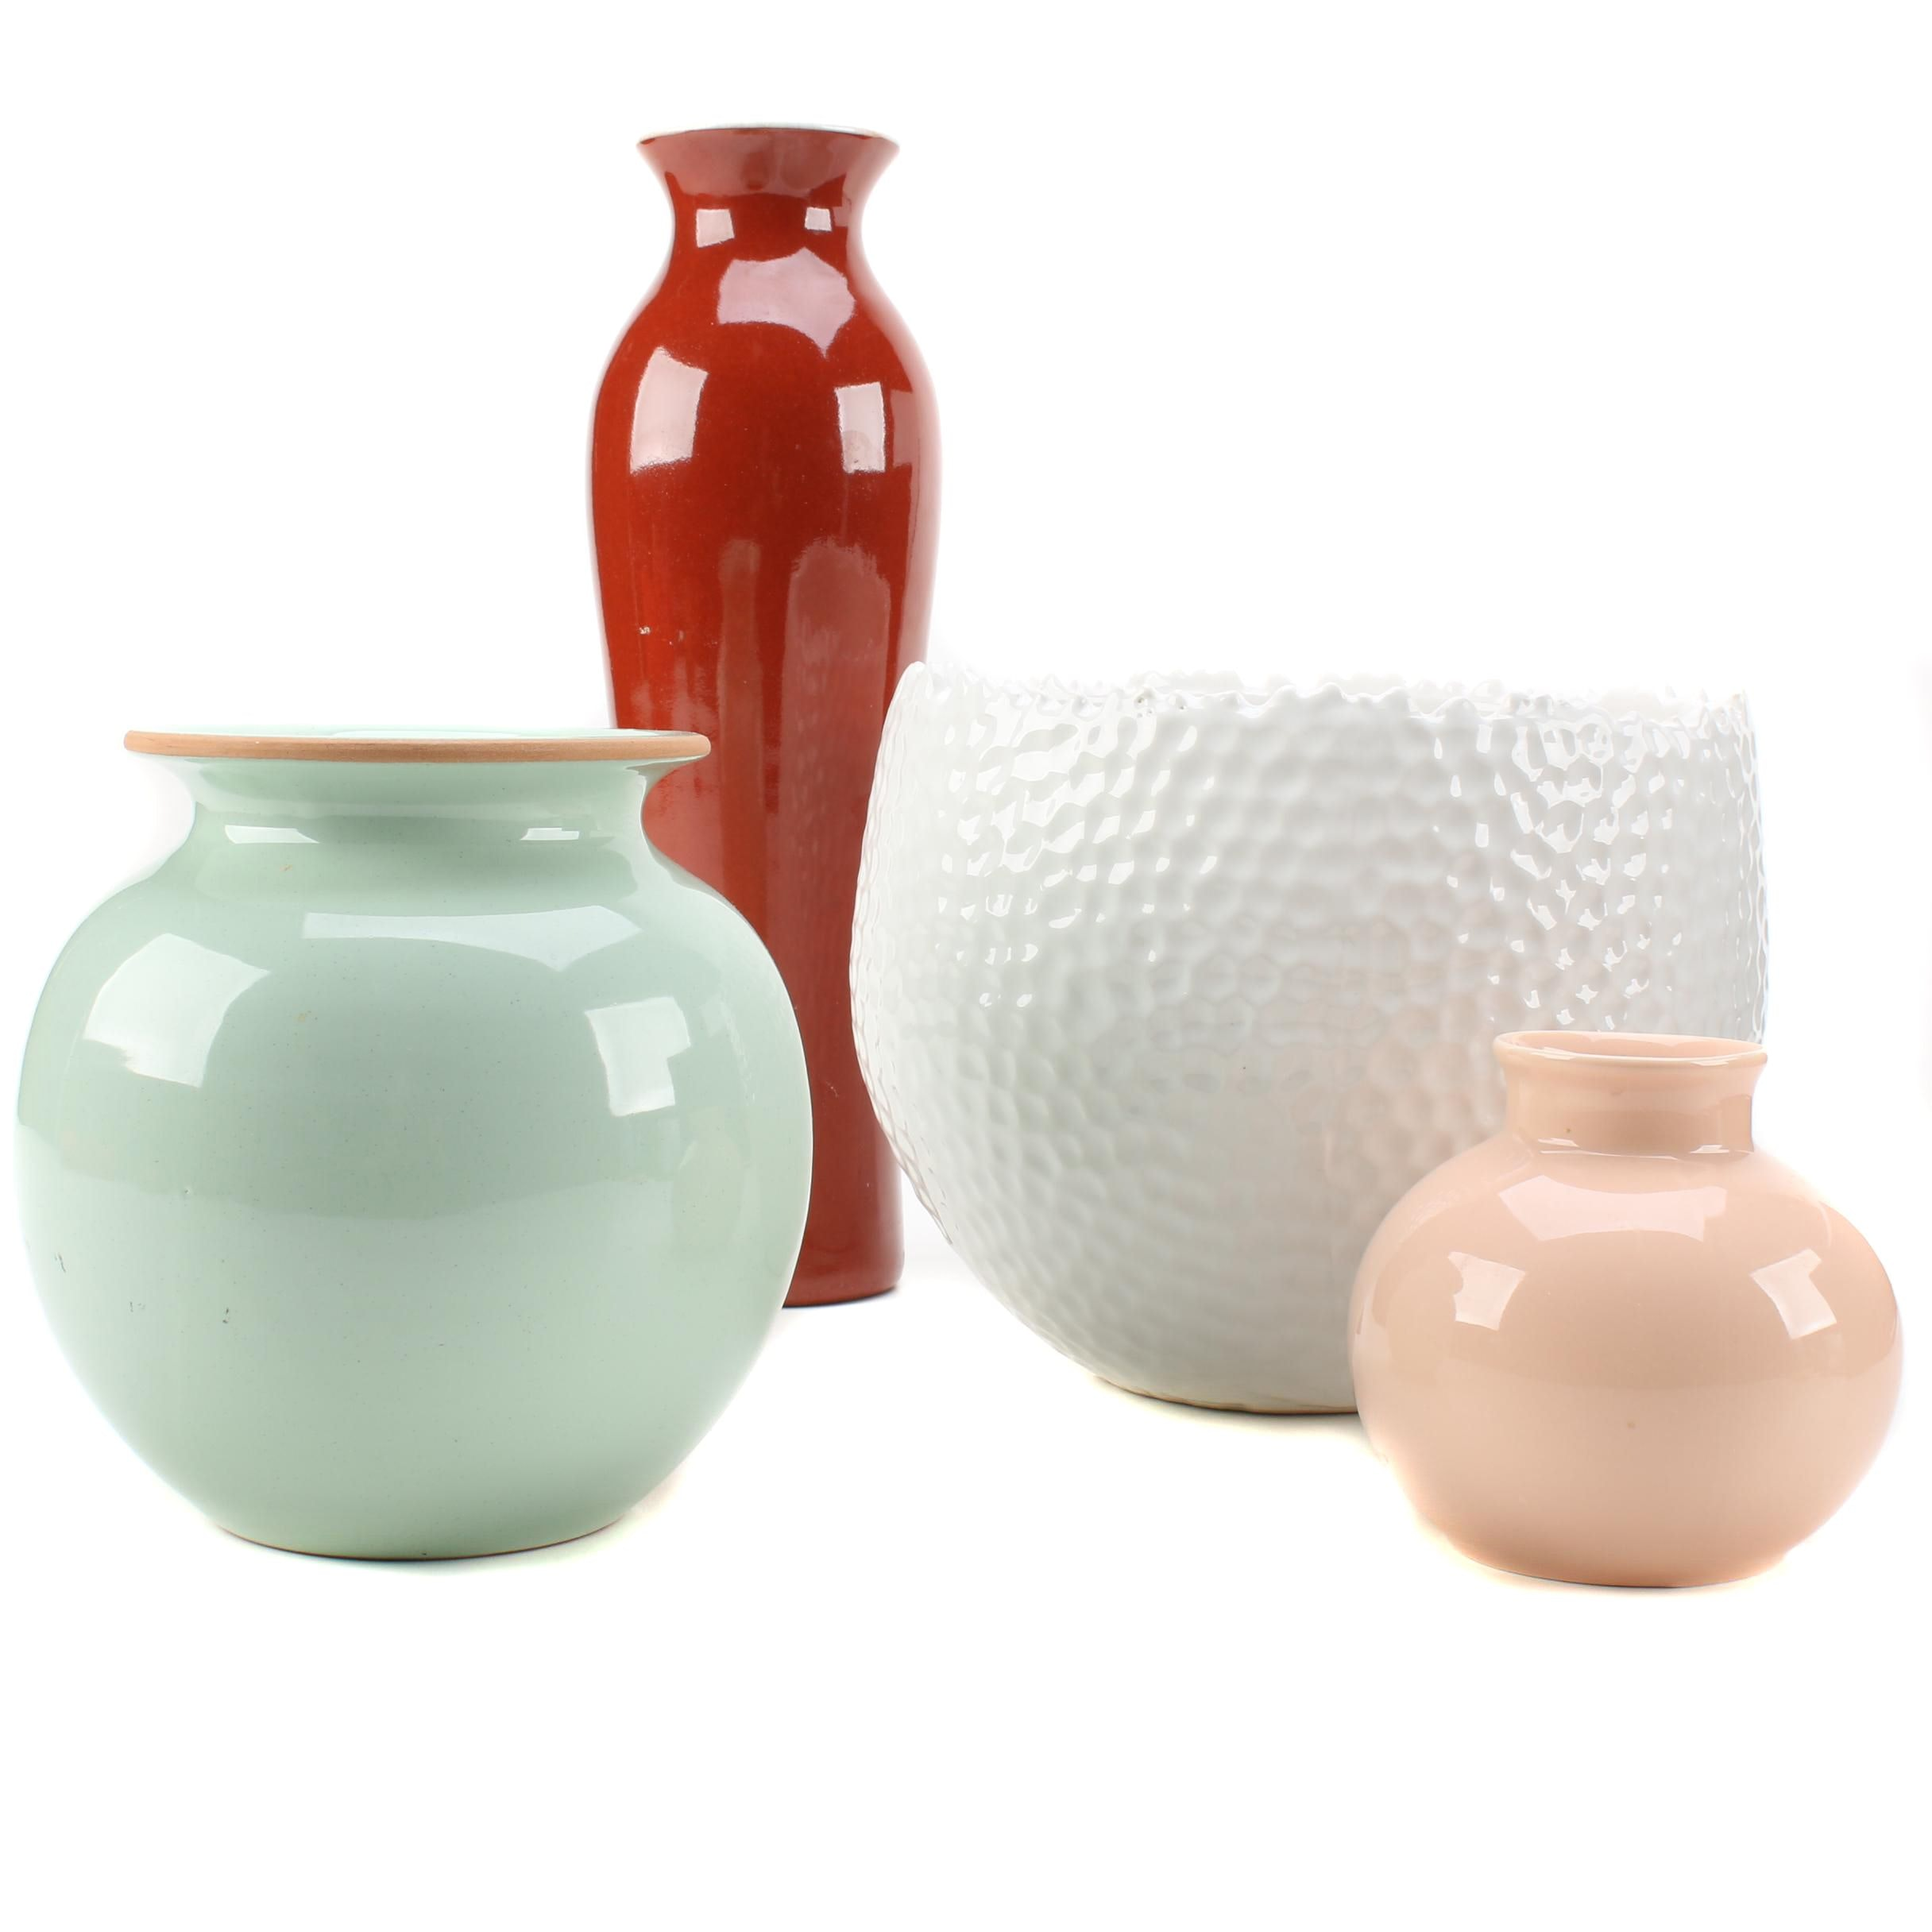 Ceramic Vases and a Planter